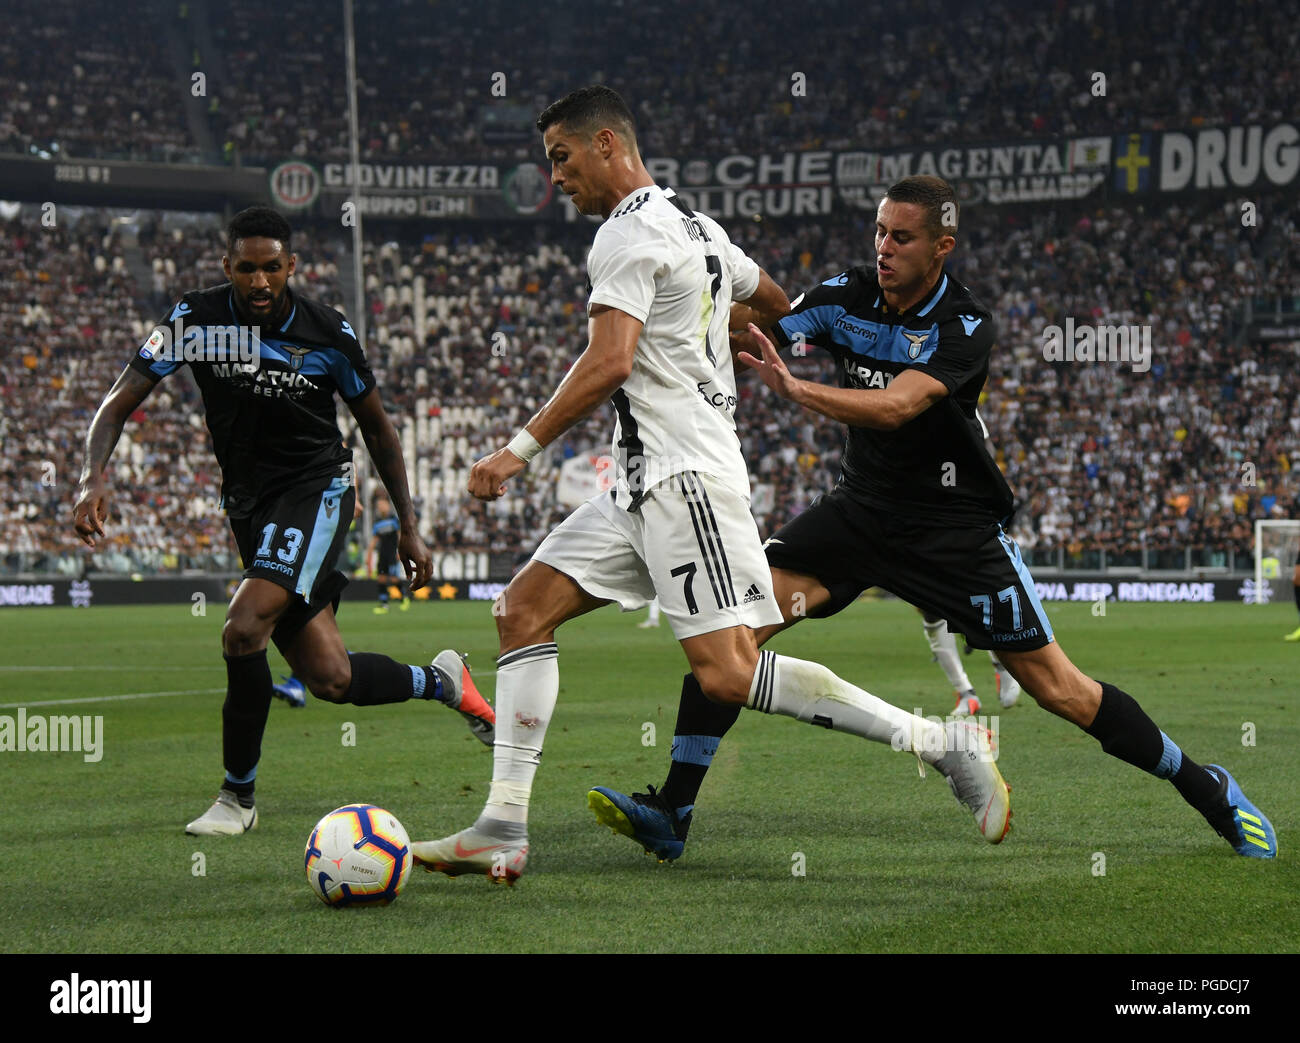 3e02599a332 Juventus  Cristiano Ronaldo (C) vies with Adam Marusic (R) during the  Italian Serie A soccer match between Juventus and Lazio in Turin